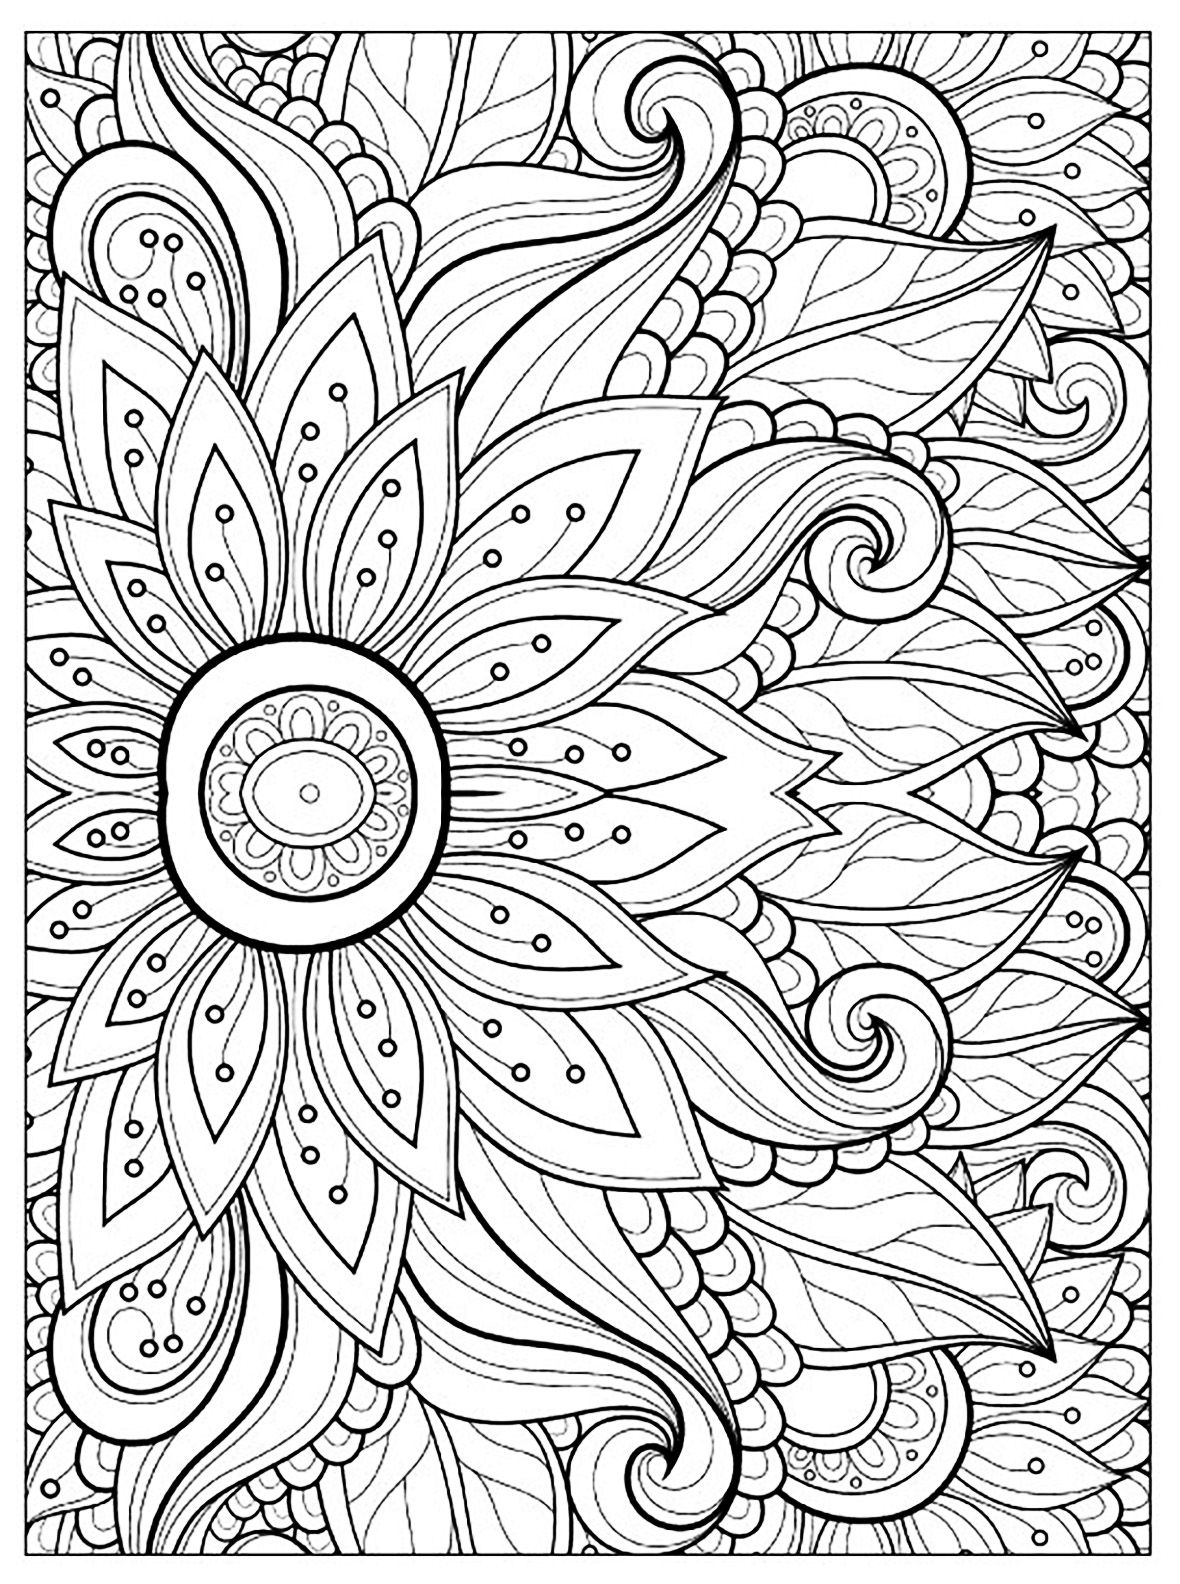 Flower coloring pages for adults - Home Vase Coloring Pages Of Flowers And Flowers Coloring Page Home Book Pages Tropical Flower Flowers Coloring Pages Of Flowers Coloring Book